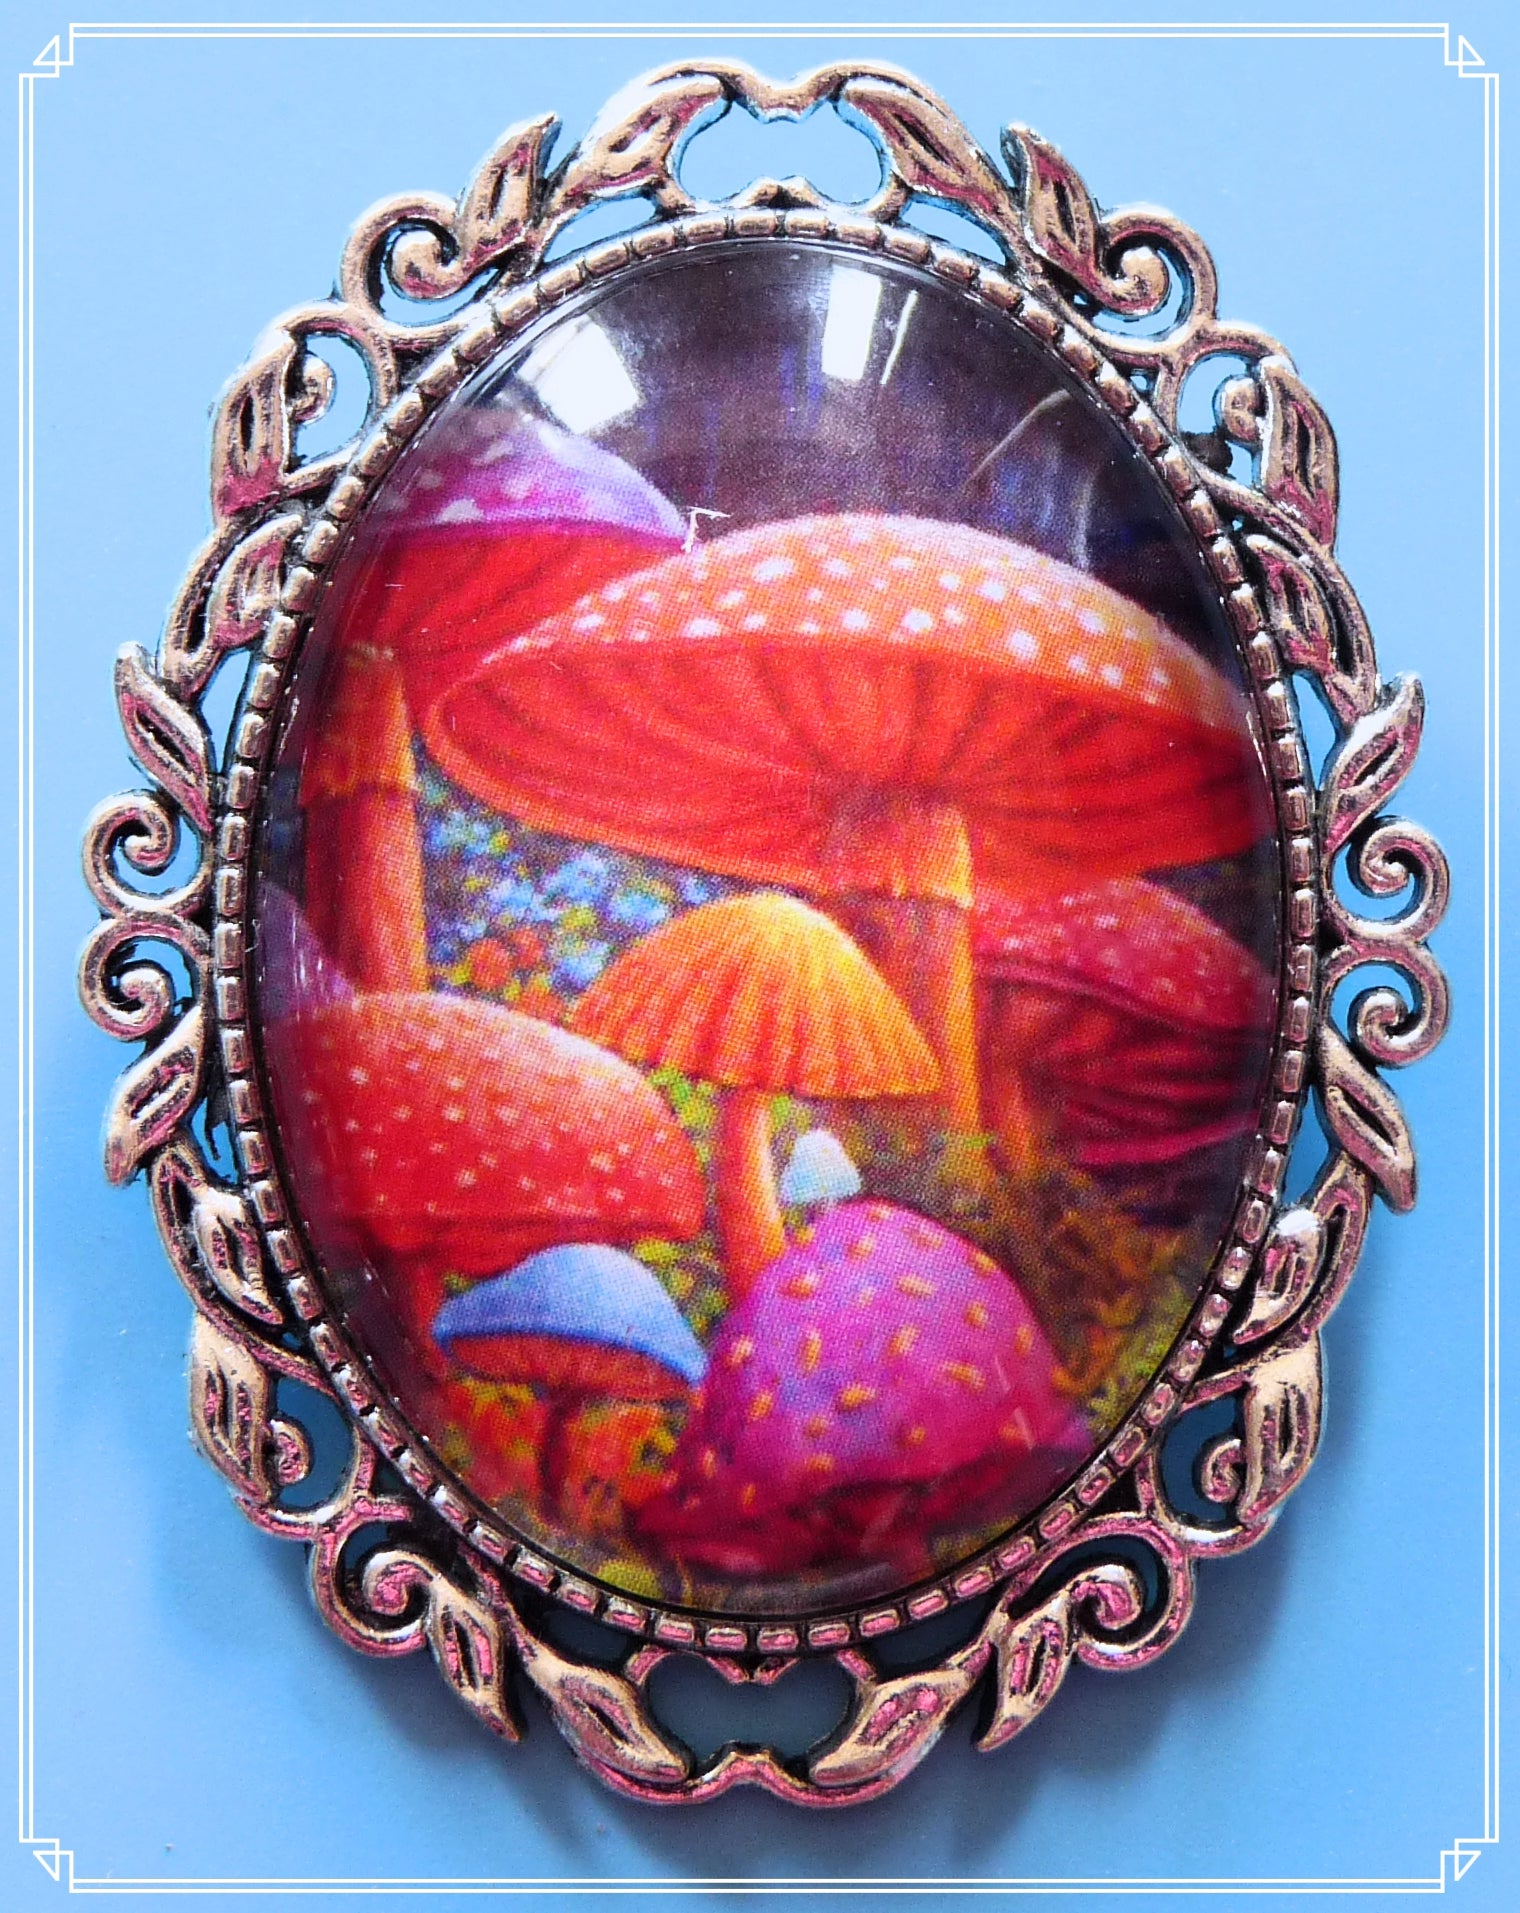 The Magical Toadstools brooch is part of my Fantasy collection and inspired by Alice in Wonderland.